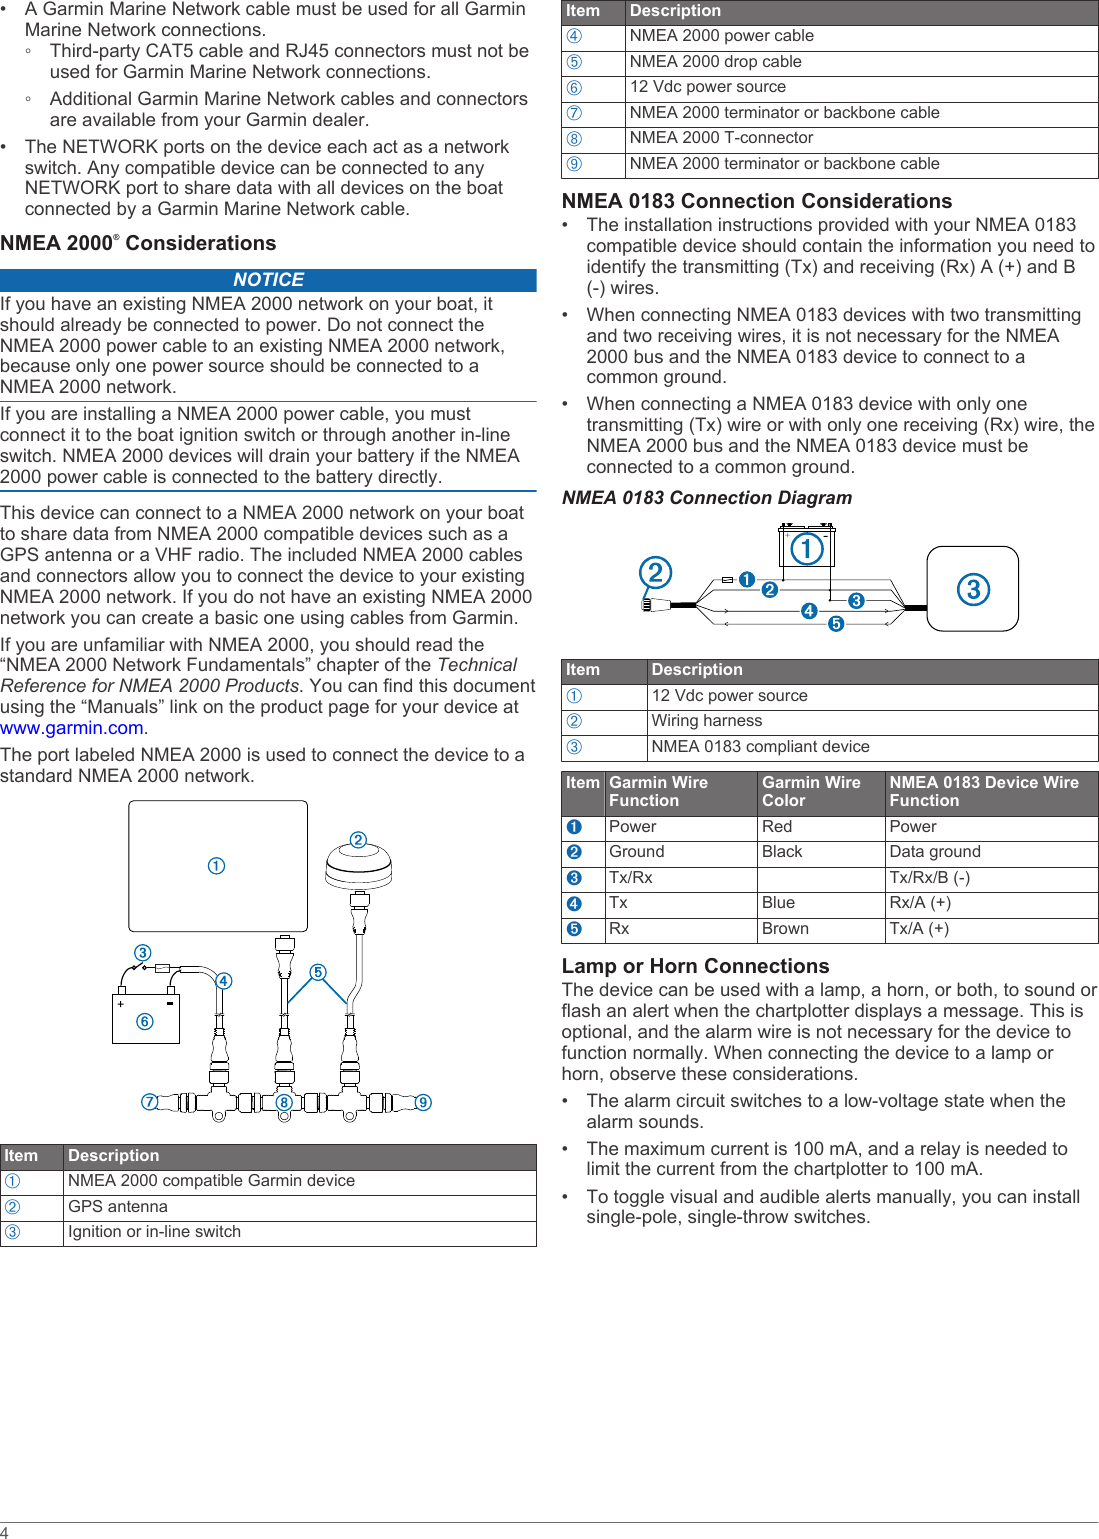 Garmin Gpsmap 7407xsv Installation Instructions Wiring Harness Page 4 Of 8